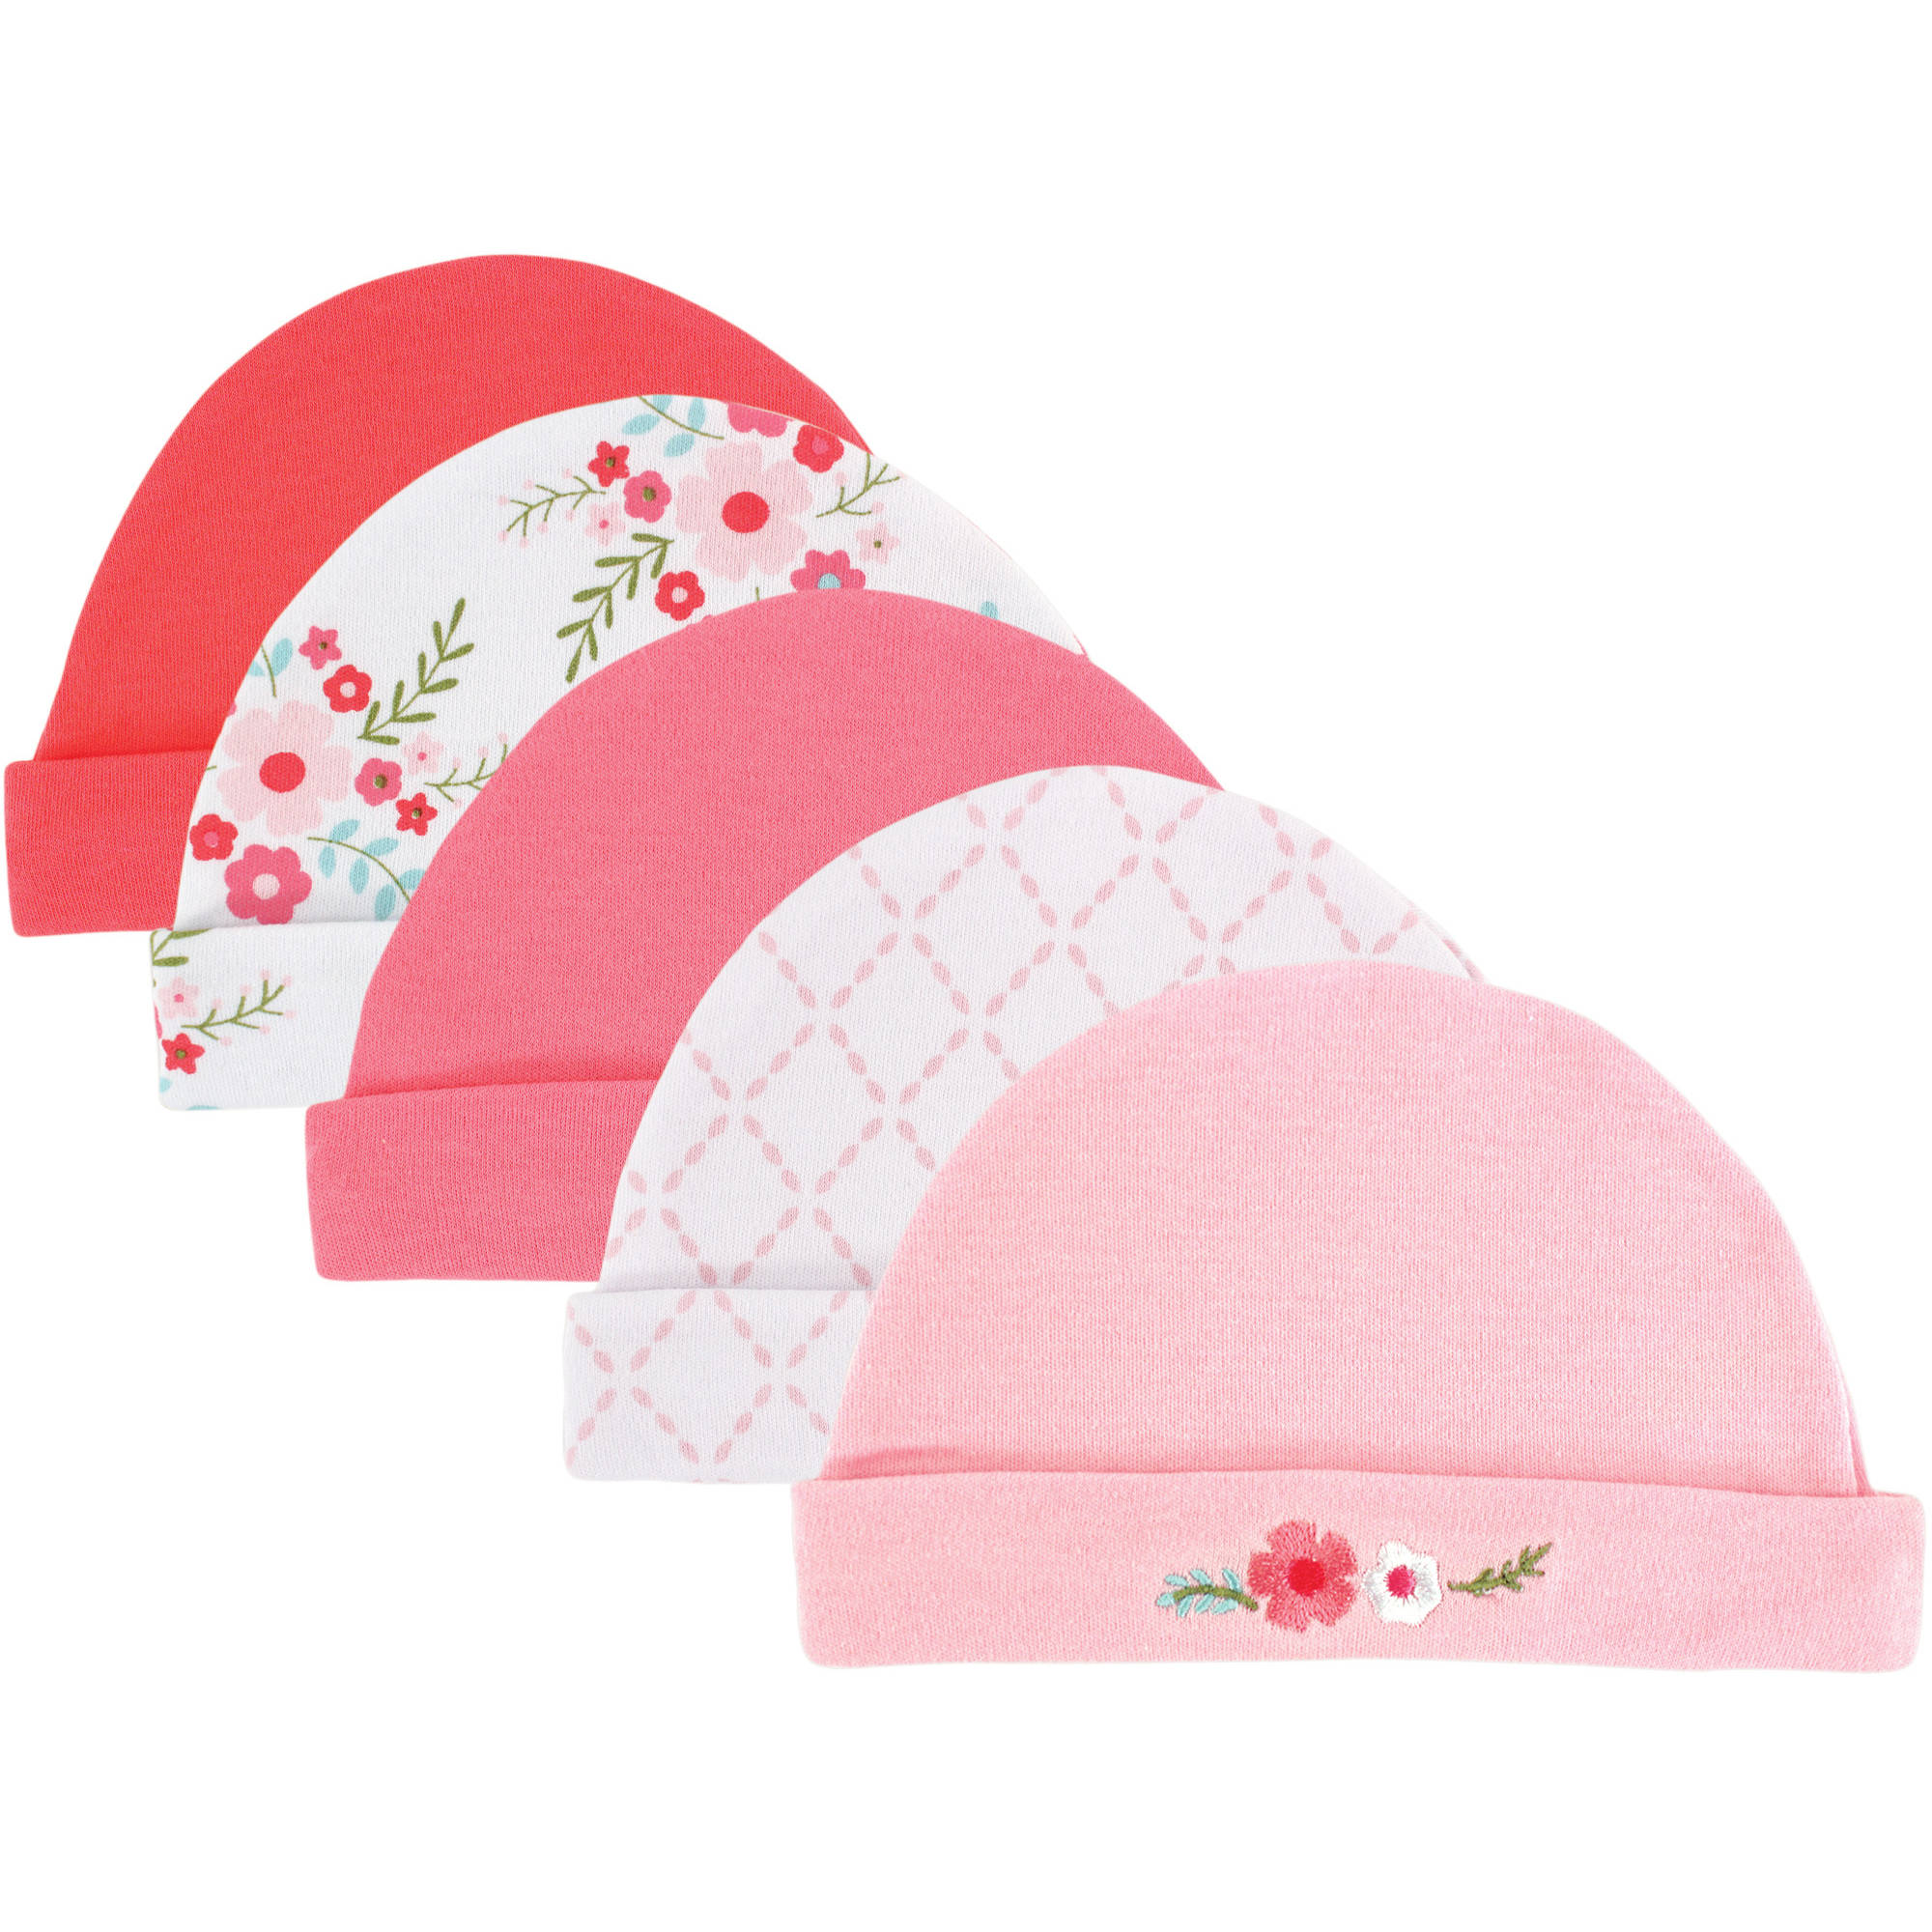 Luvable Friends Newborn Baby Girls Cap 5-Pack - Floral, 0-6 months